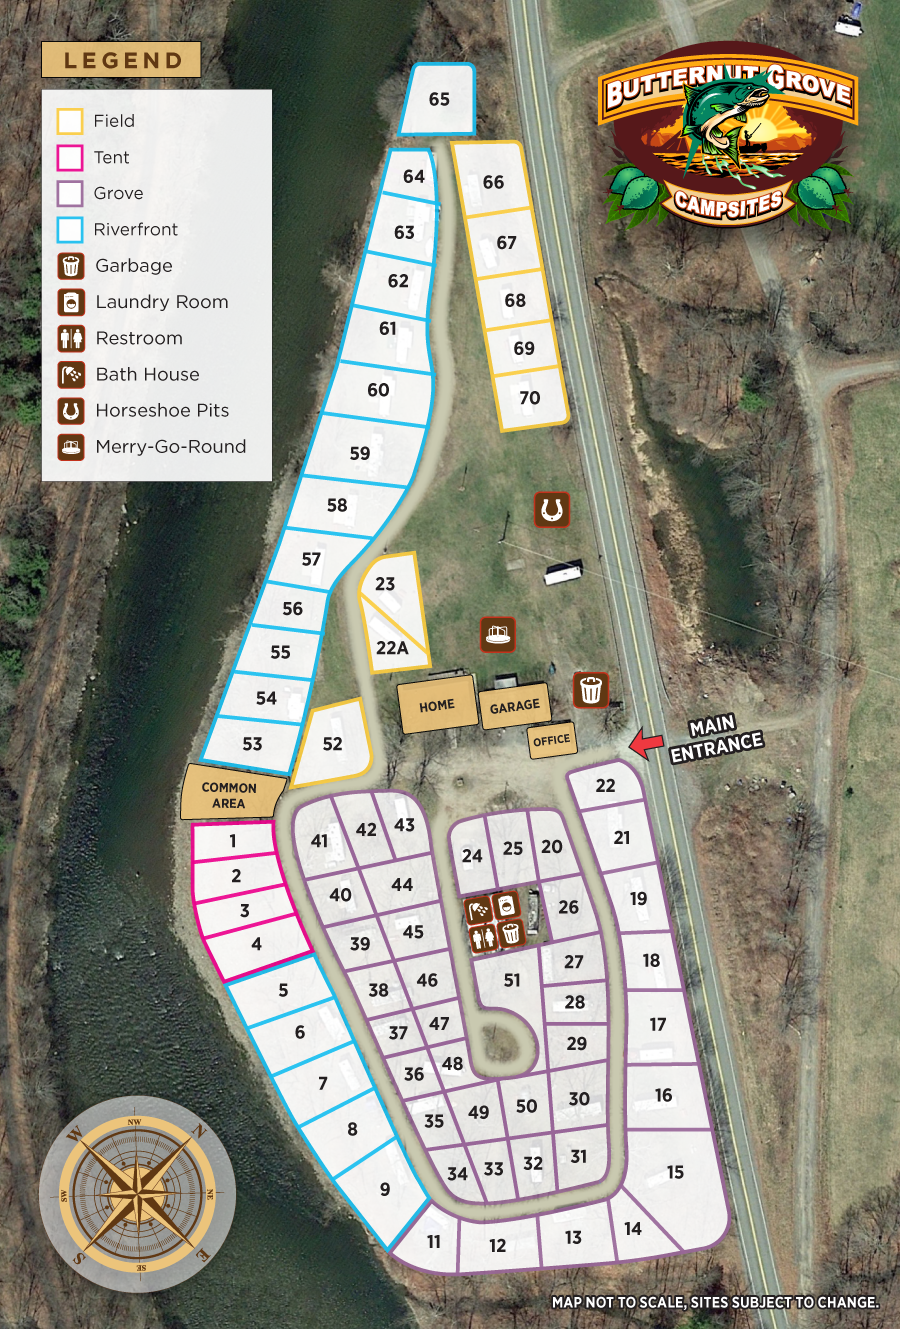 Butternut Grove Campsites RV Park Map